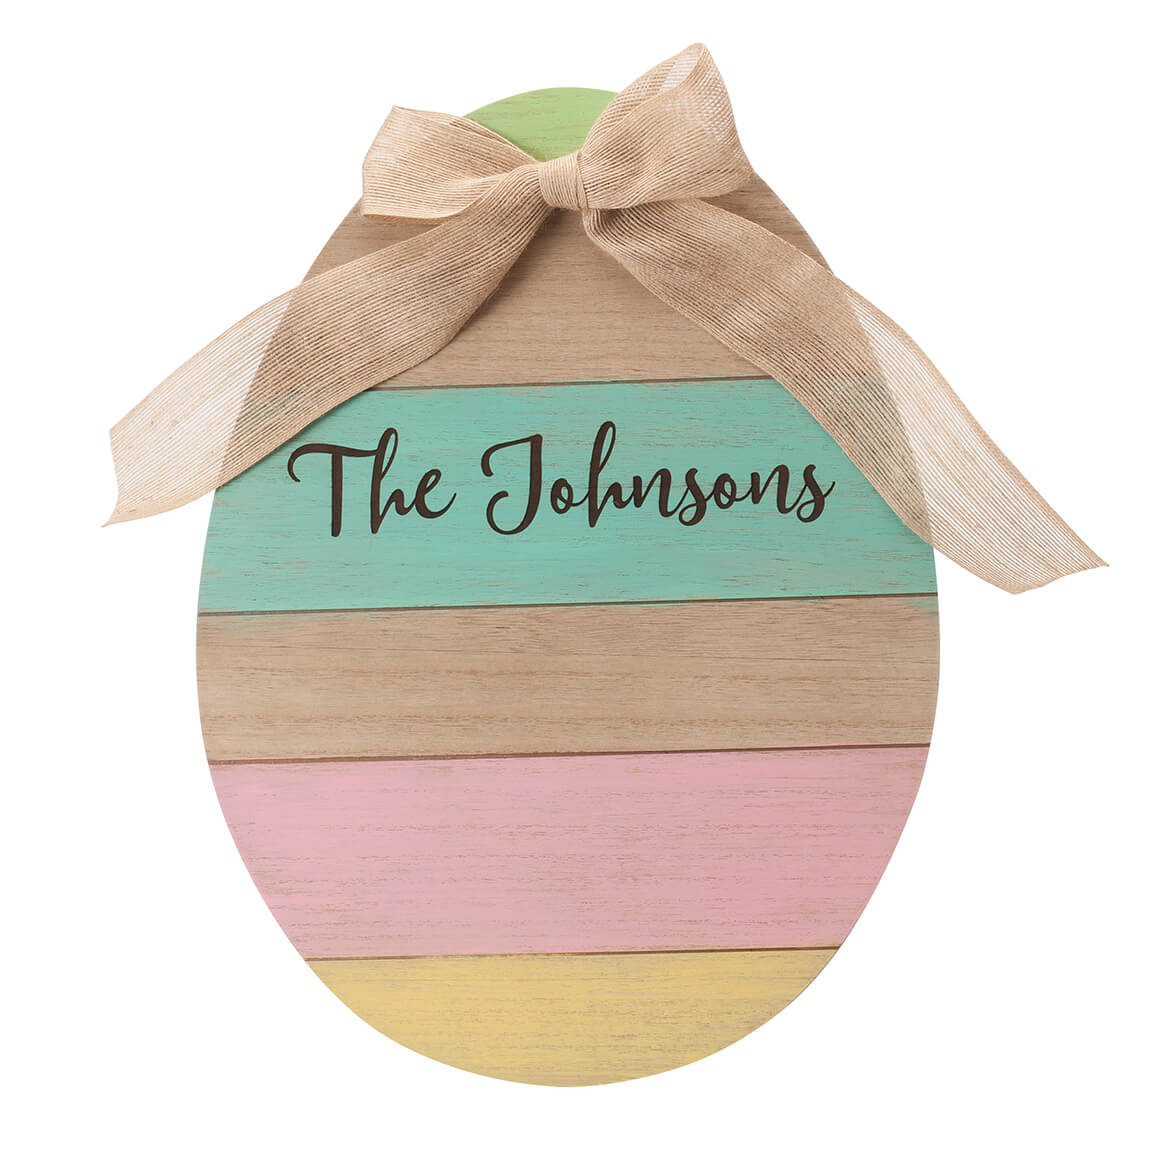 Personalized Wood Egg Sign with Burlap Bow-366293